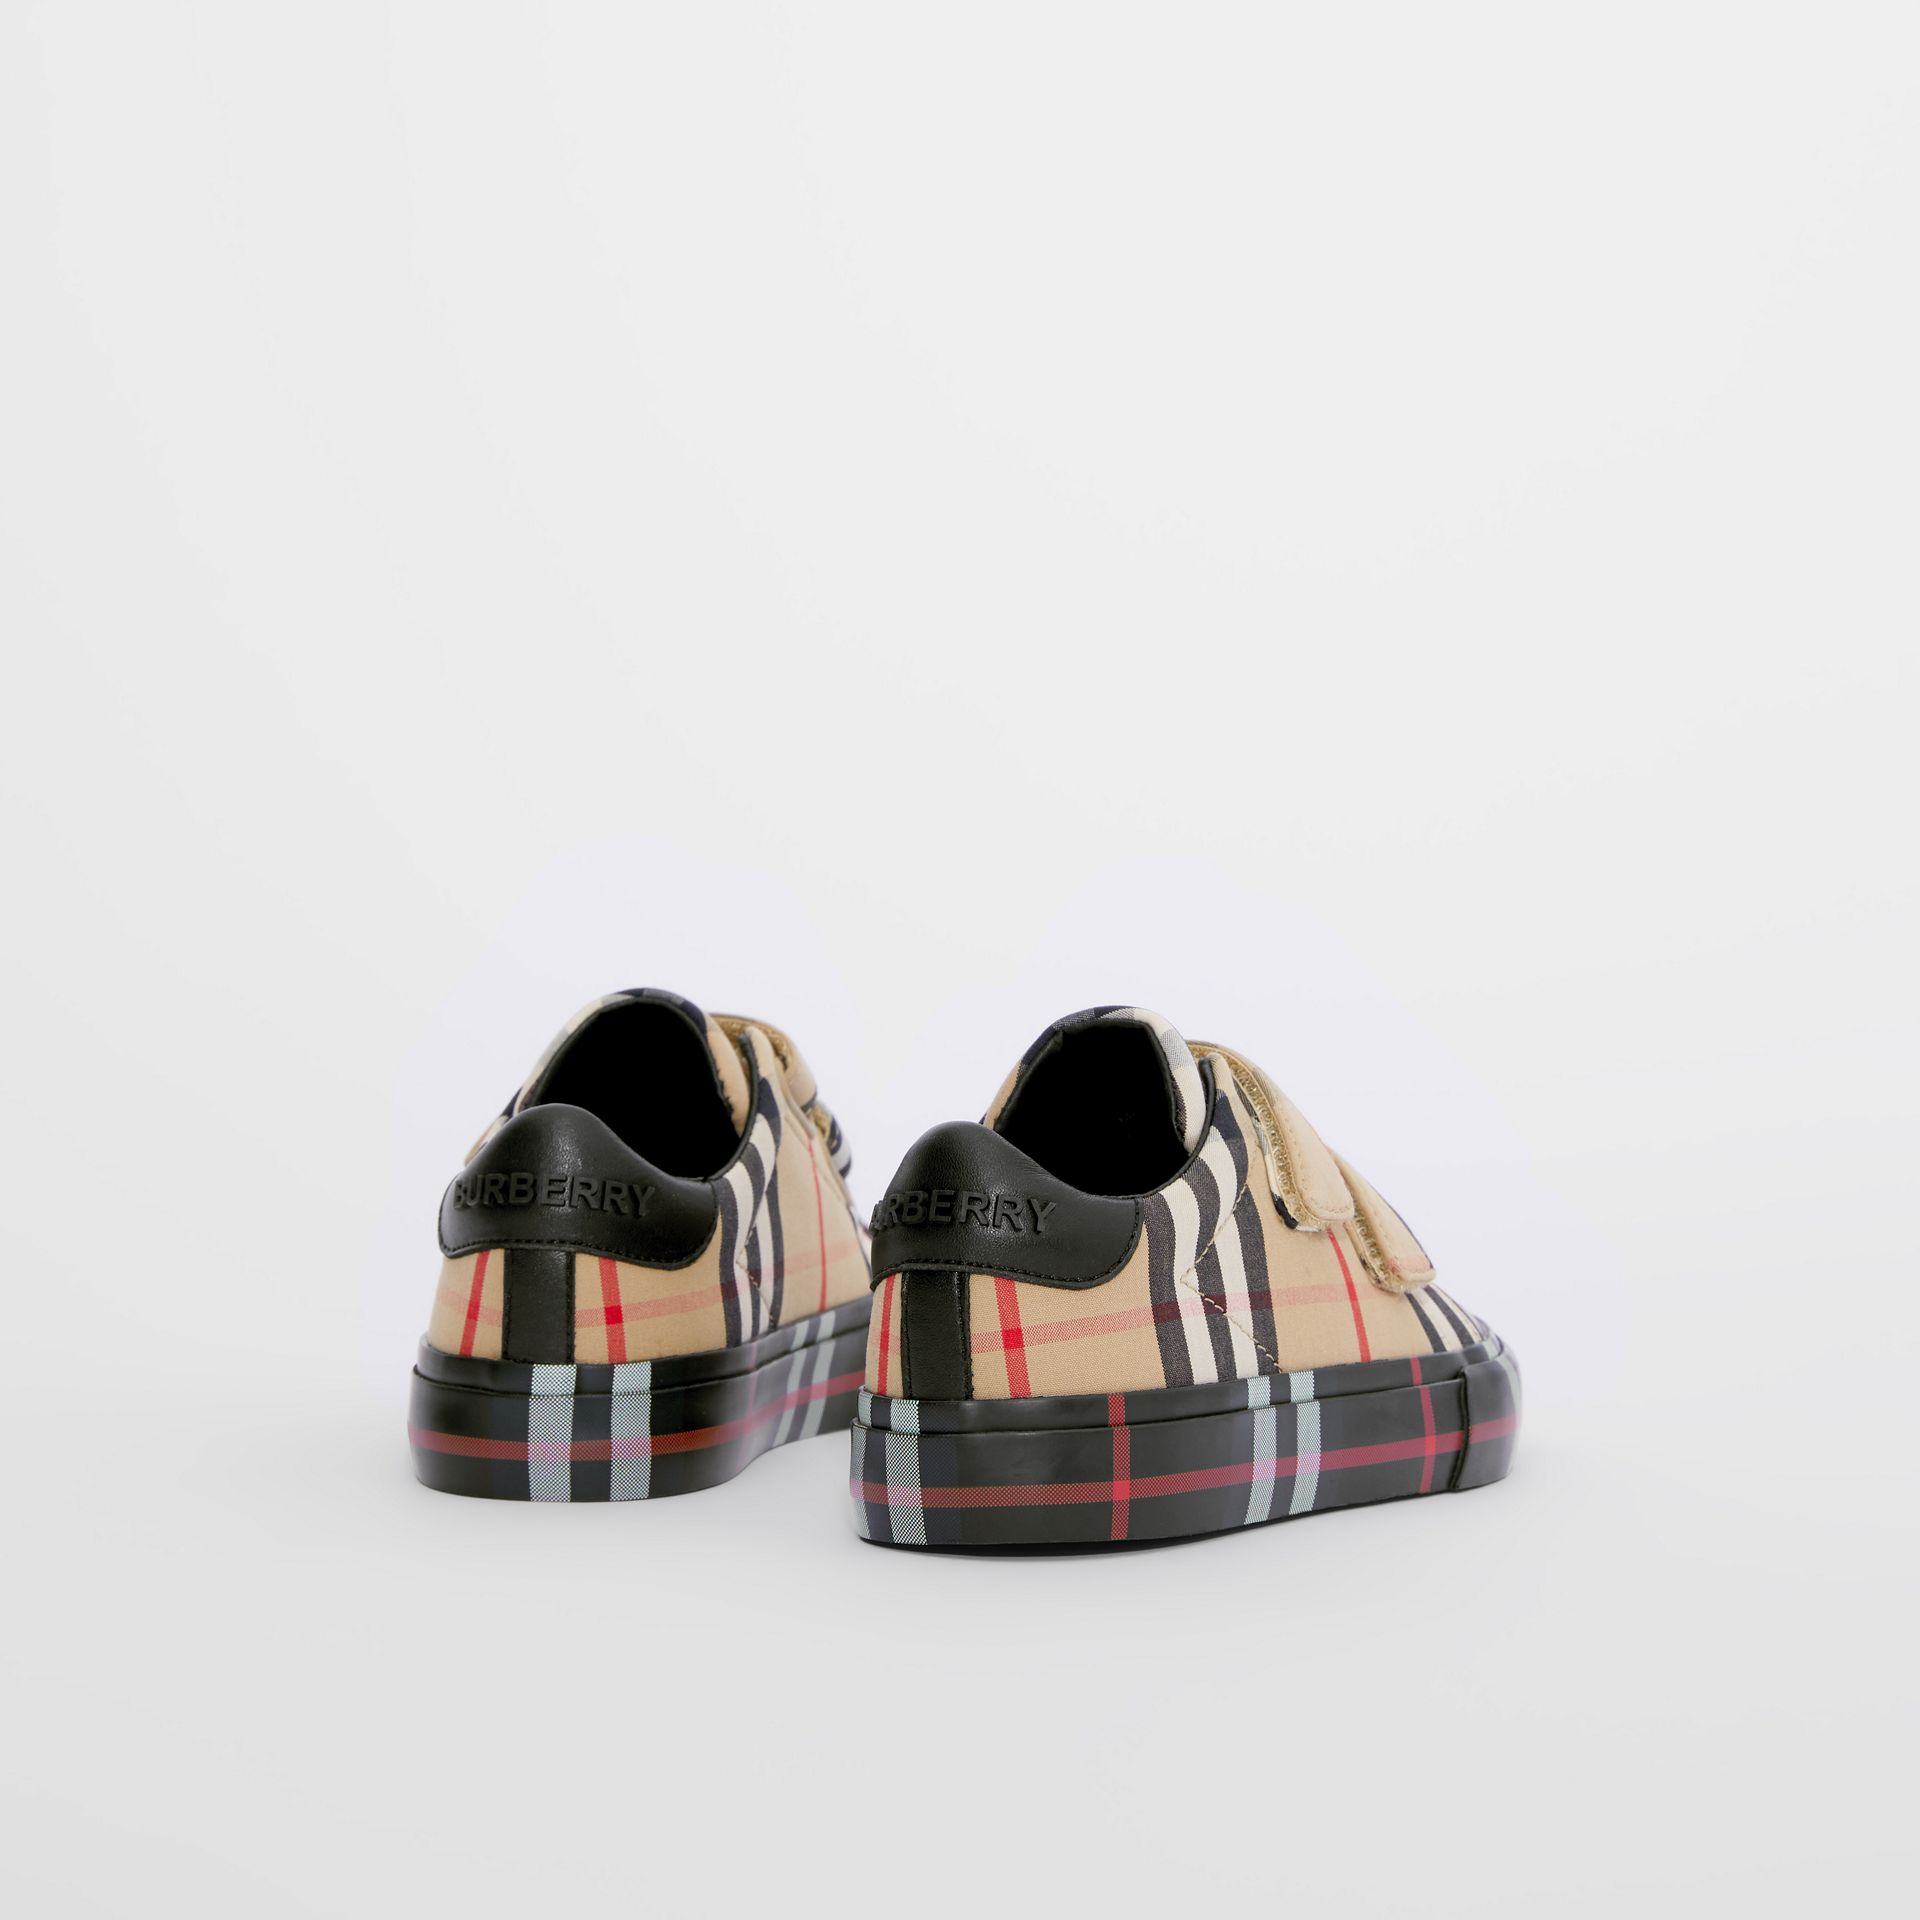 Sneakers en coton check (Beige D'archive/noir) - Enfant | Burberry Canada - photo de la galerie 2